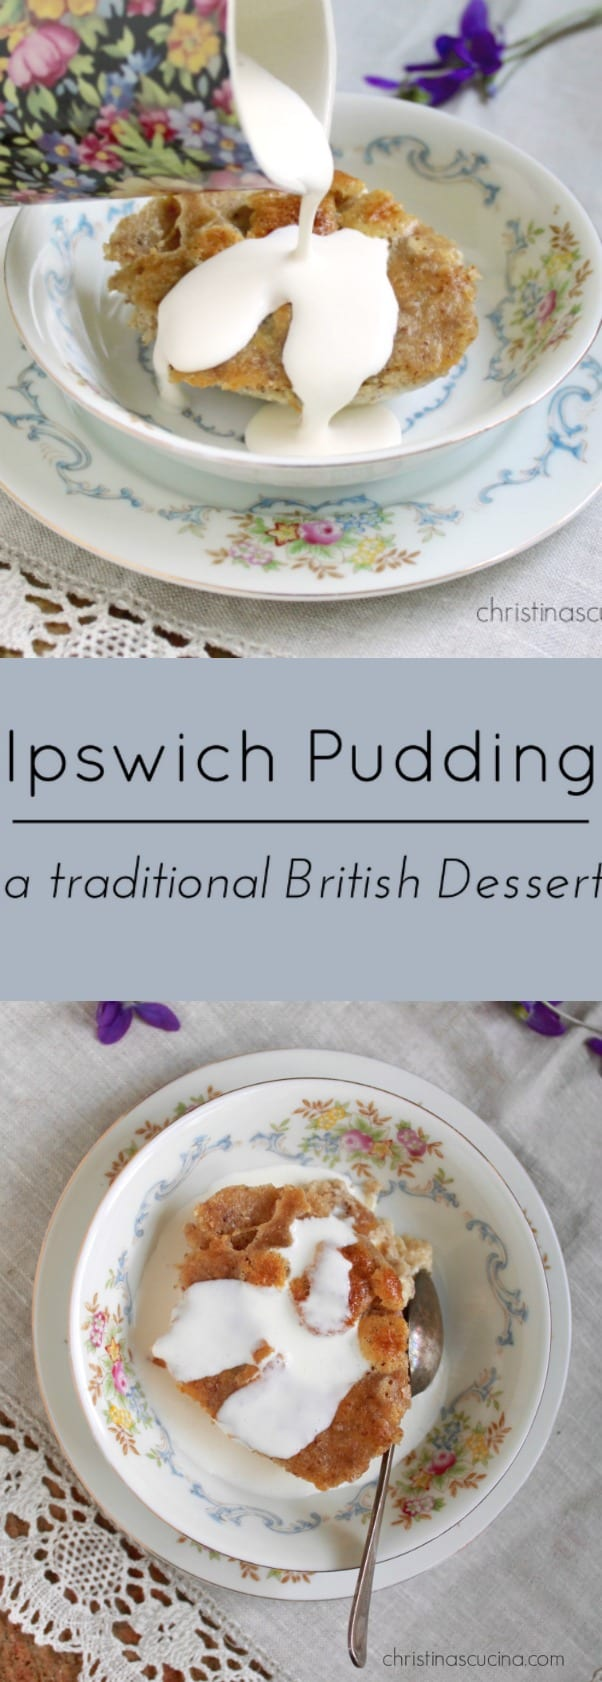 Ipswich Pudding; a traditional British Dessert with Almonds and Cream.